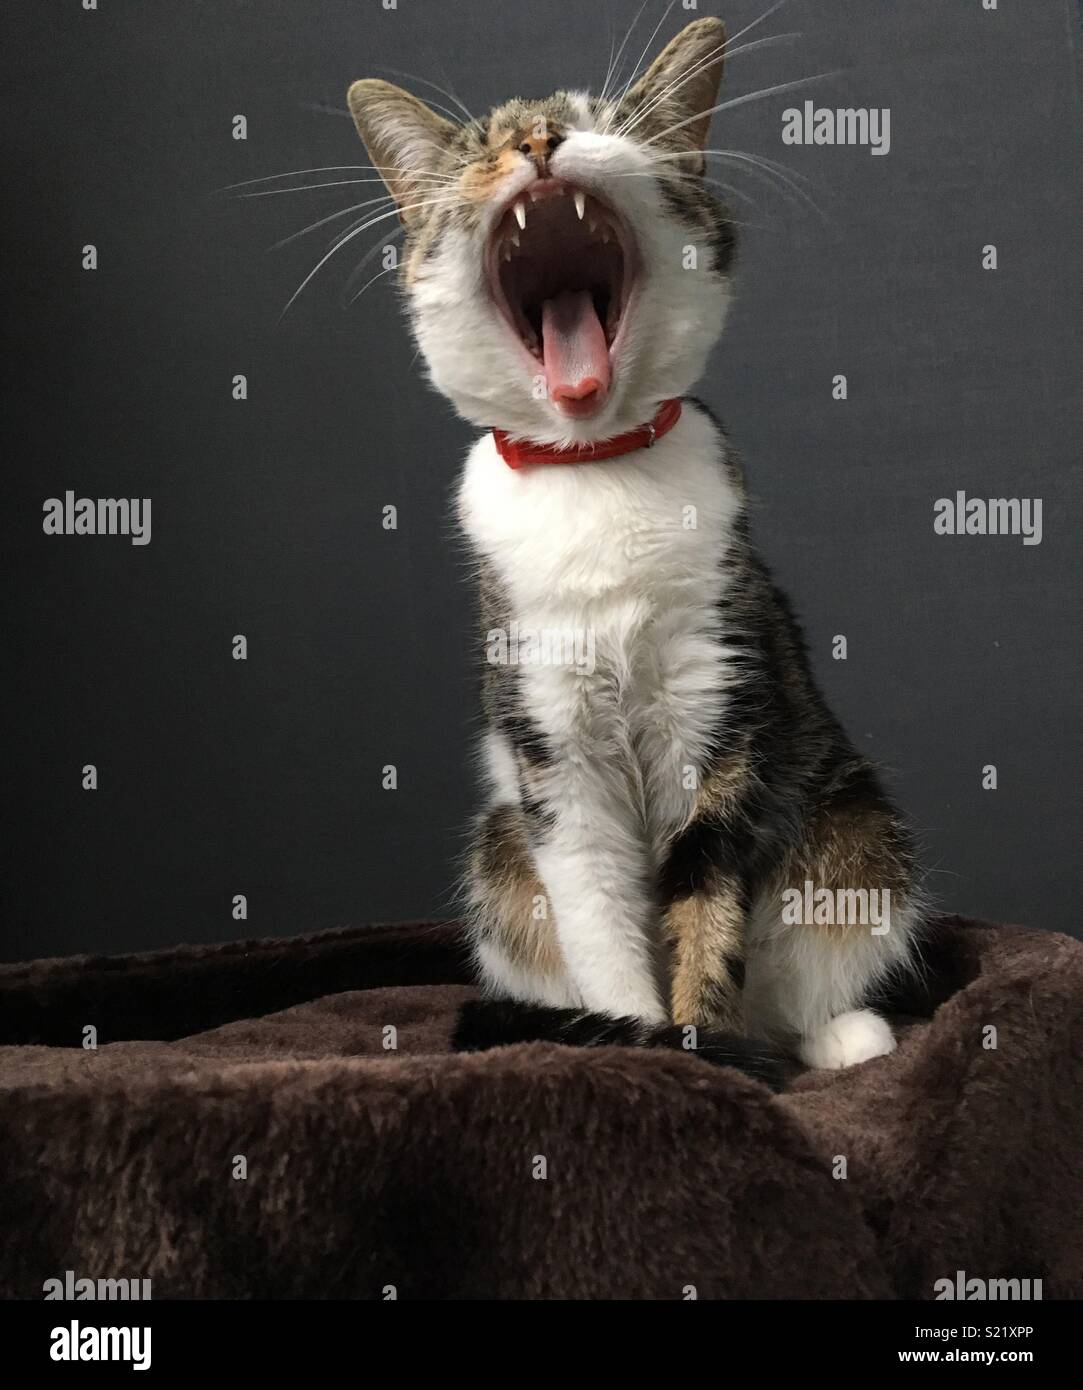 Sitting cat yawning - Stock Image